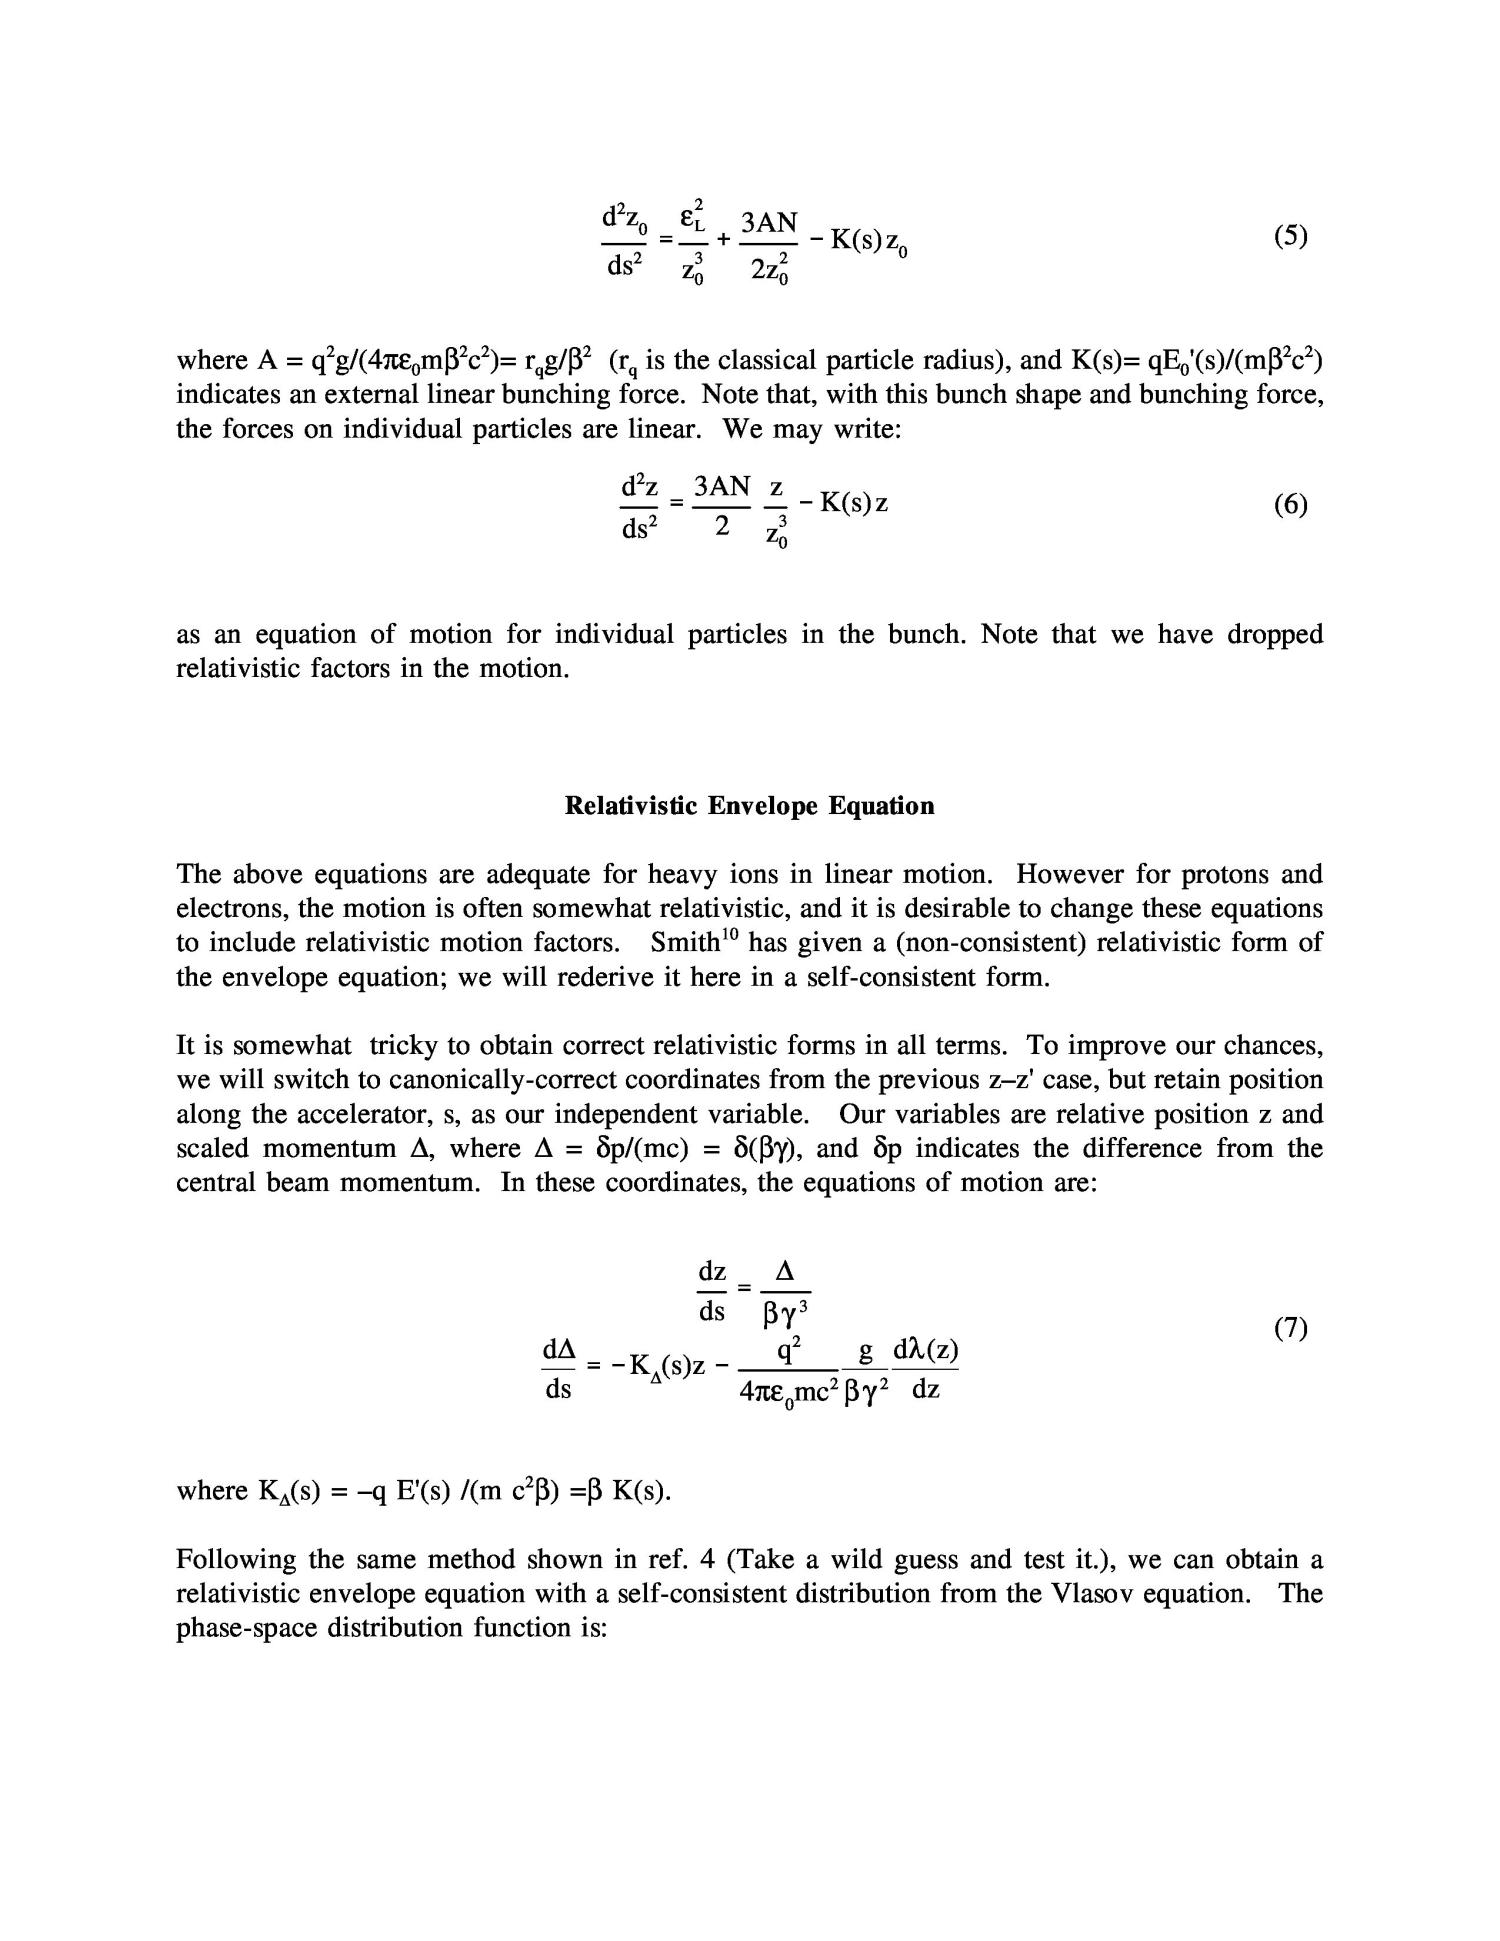 Extensions of the longitudinal envelope equation                                                                                                      [Sequence #]: 3 of 8